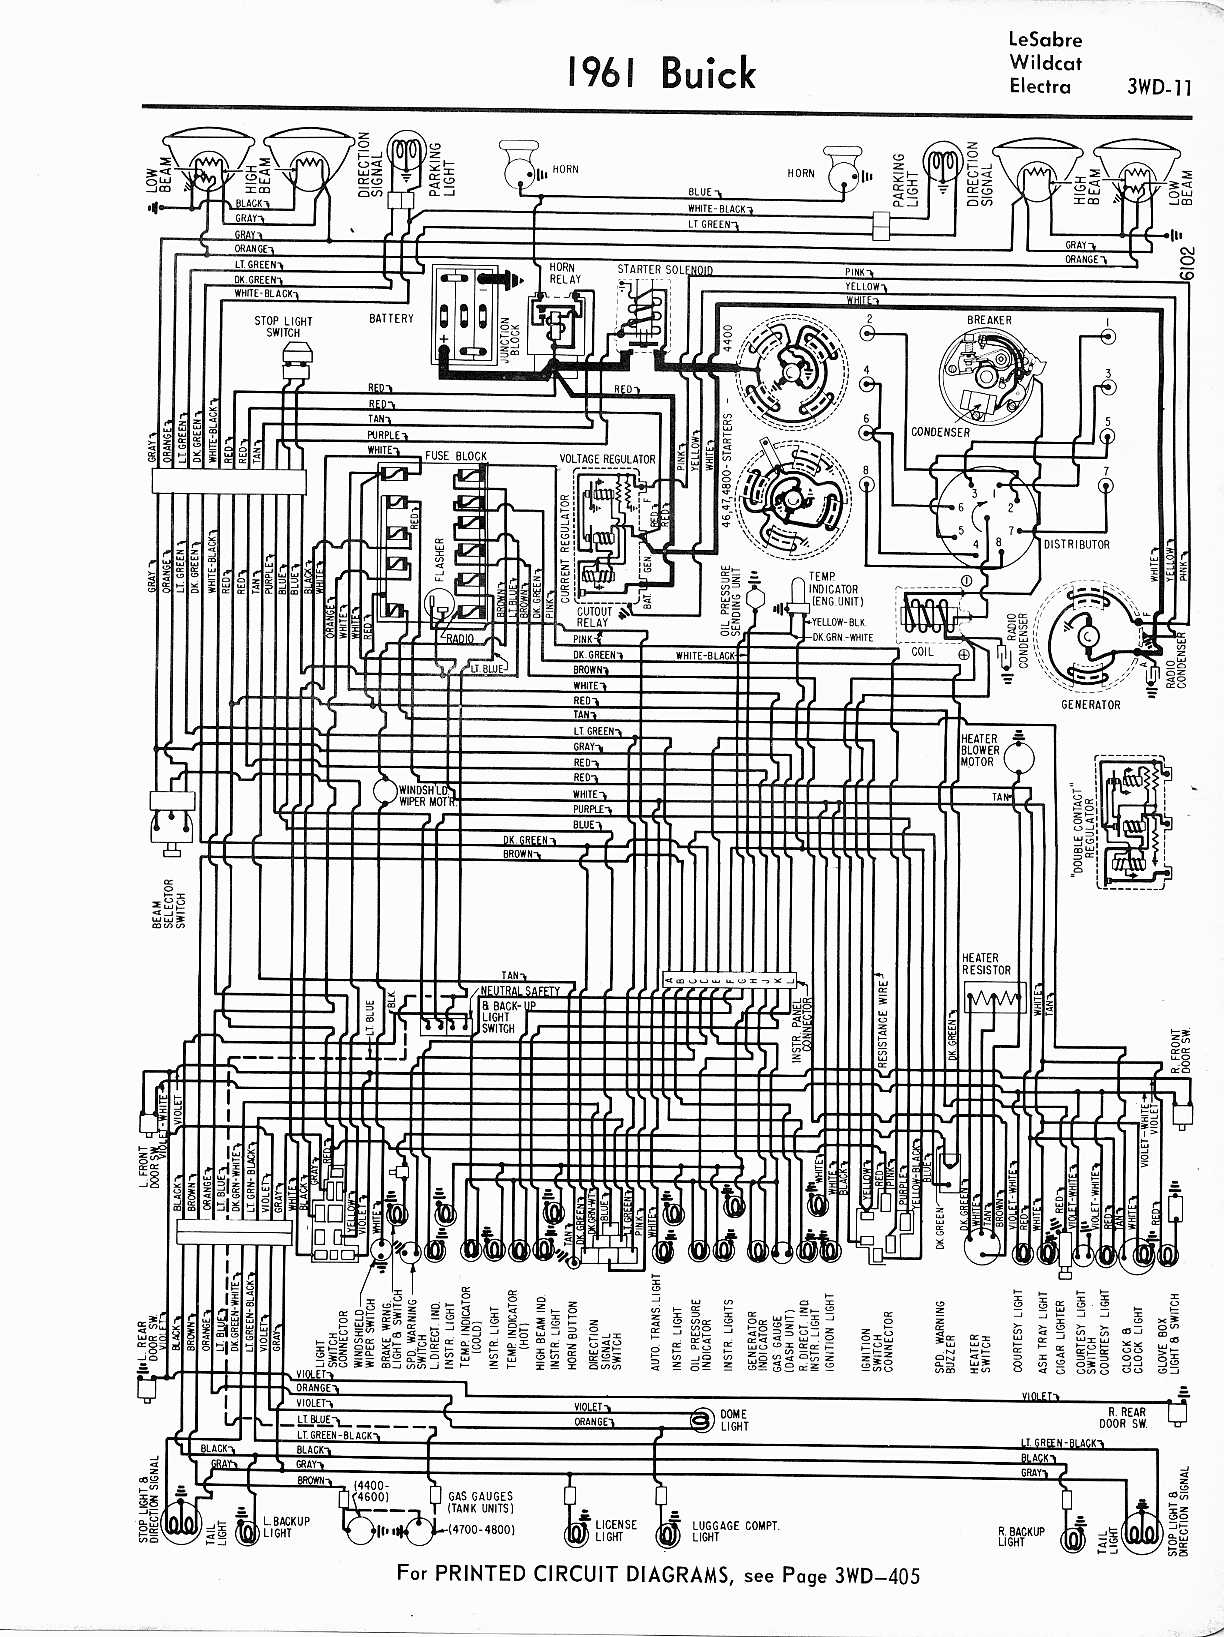 MWireBuic65_3WD 011 buick lesabre fuse box diagram wiring diagram simonand 1957 buick special fuse box location at panicattacktreatment.co